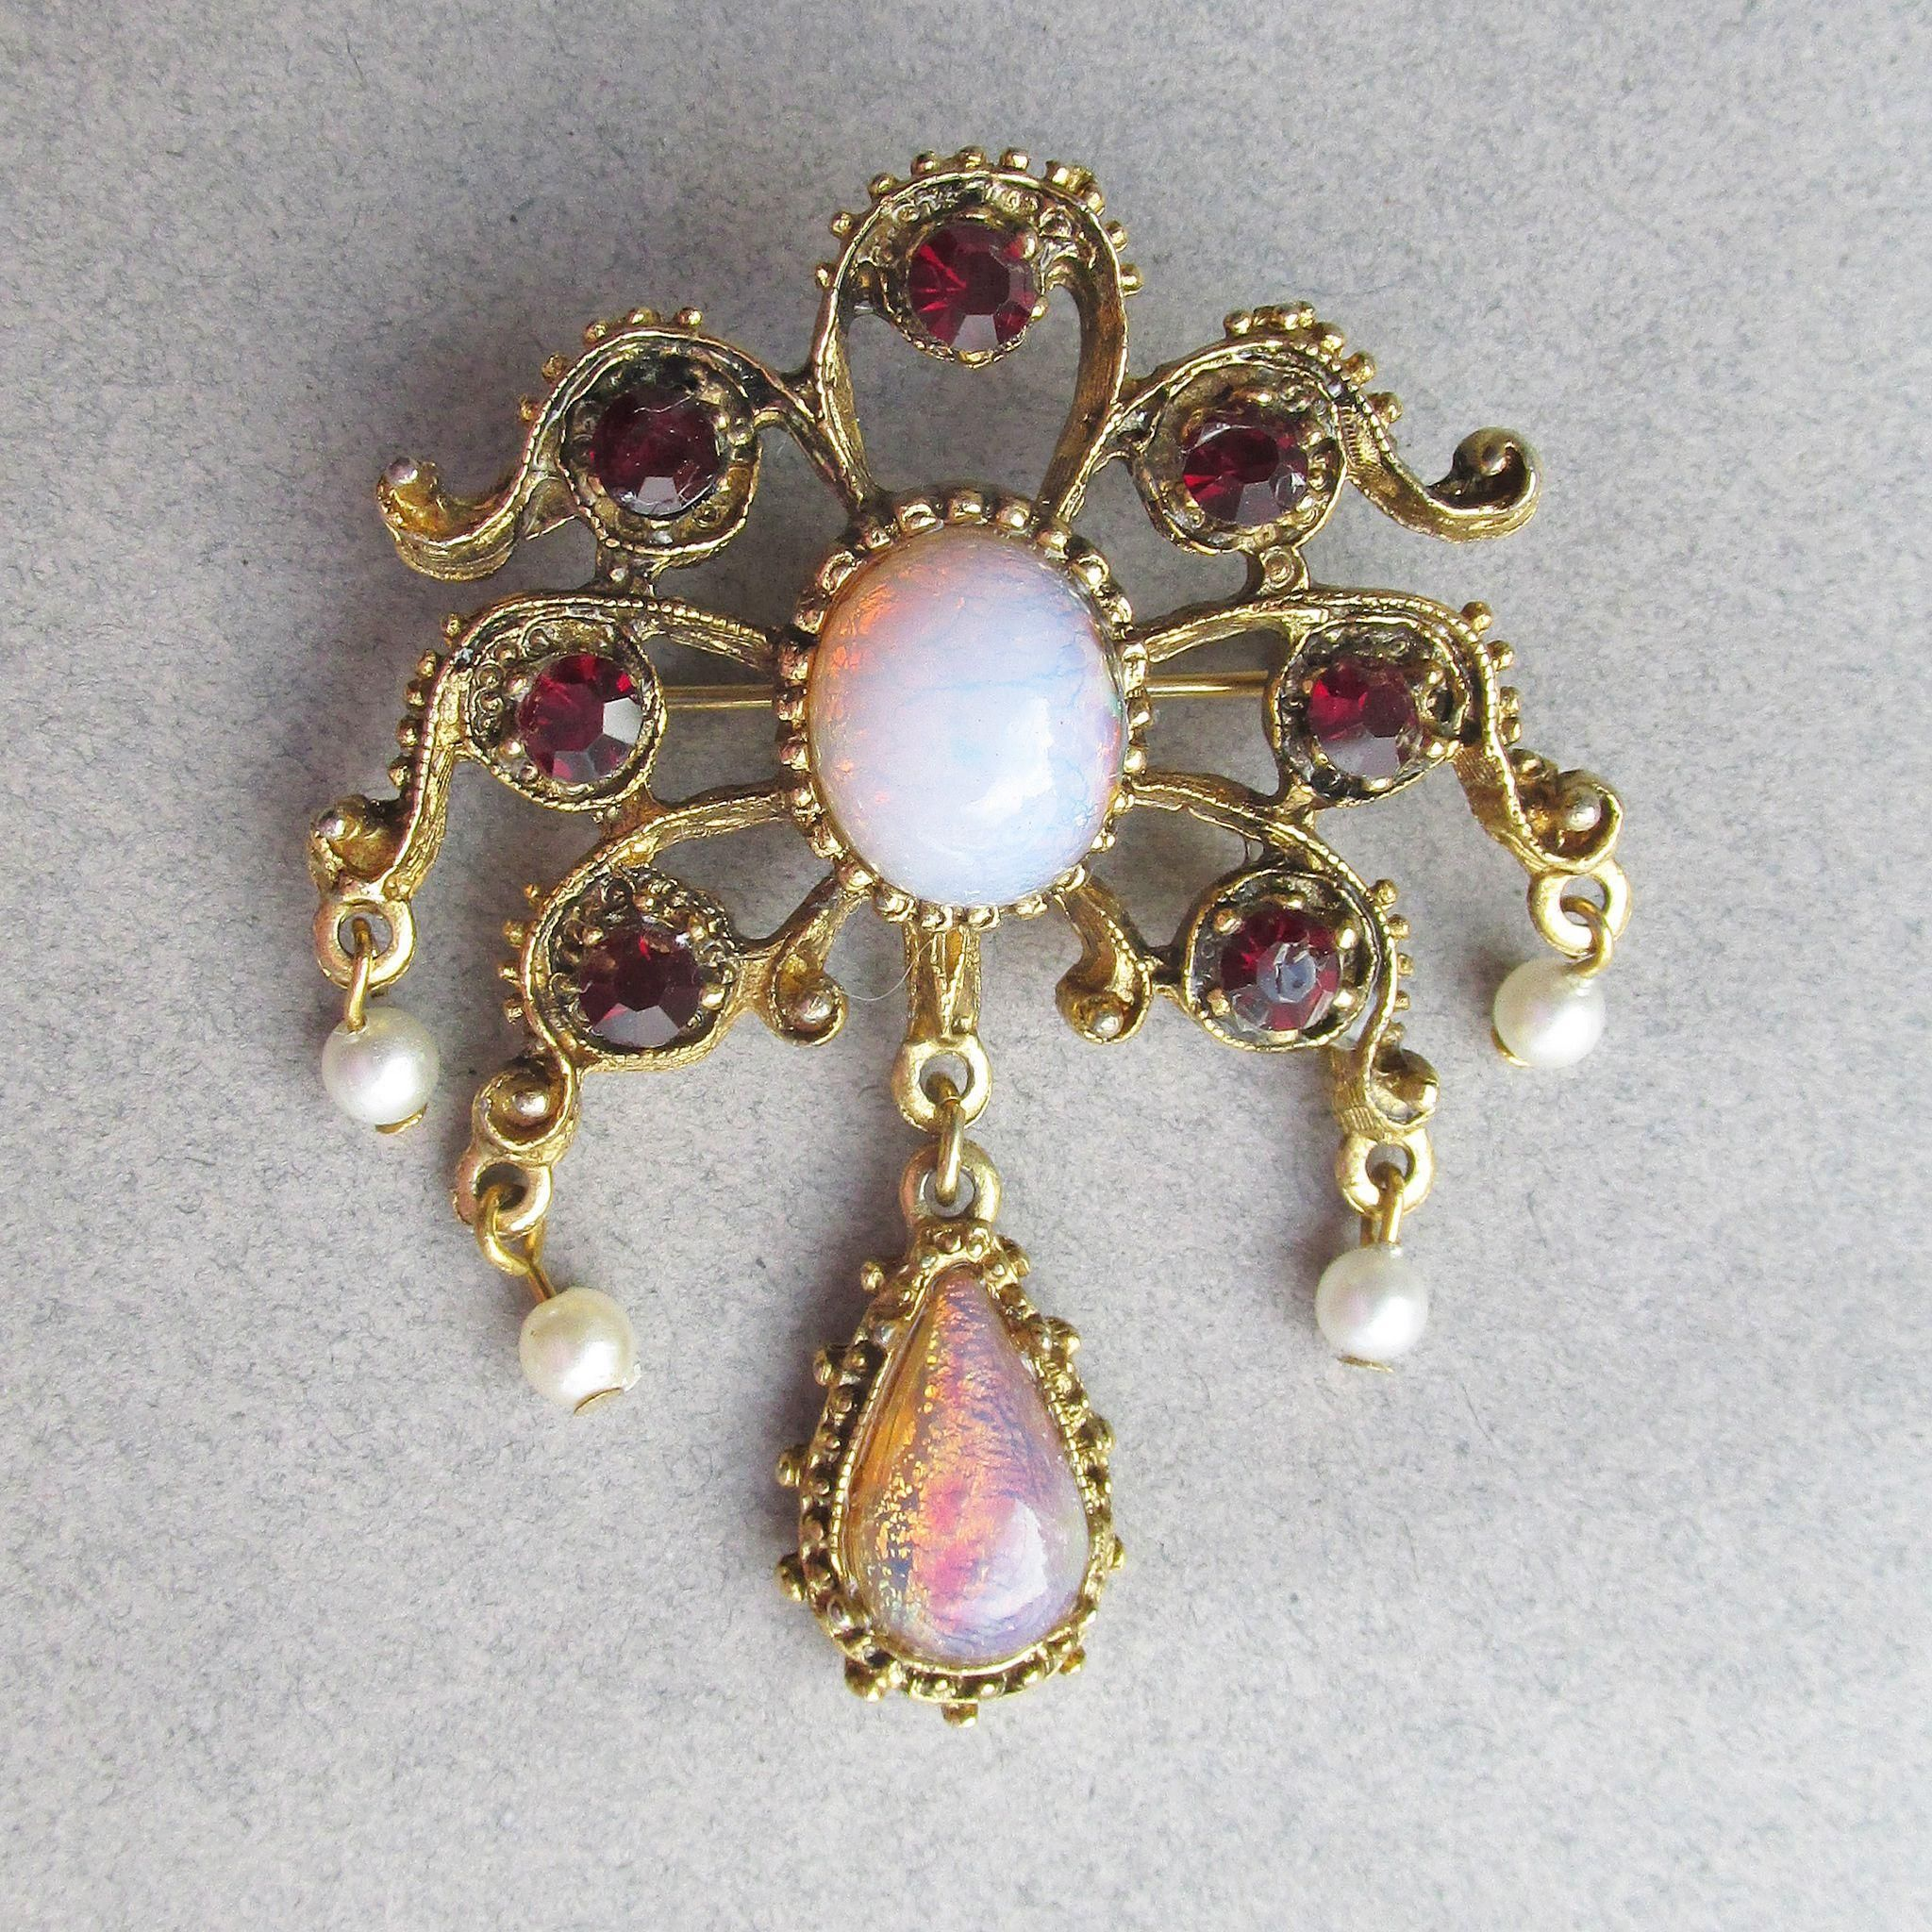 dreamy oh gold engagement are rings opal am pearls stewart i so and rose pin martha size australian that